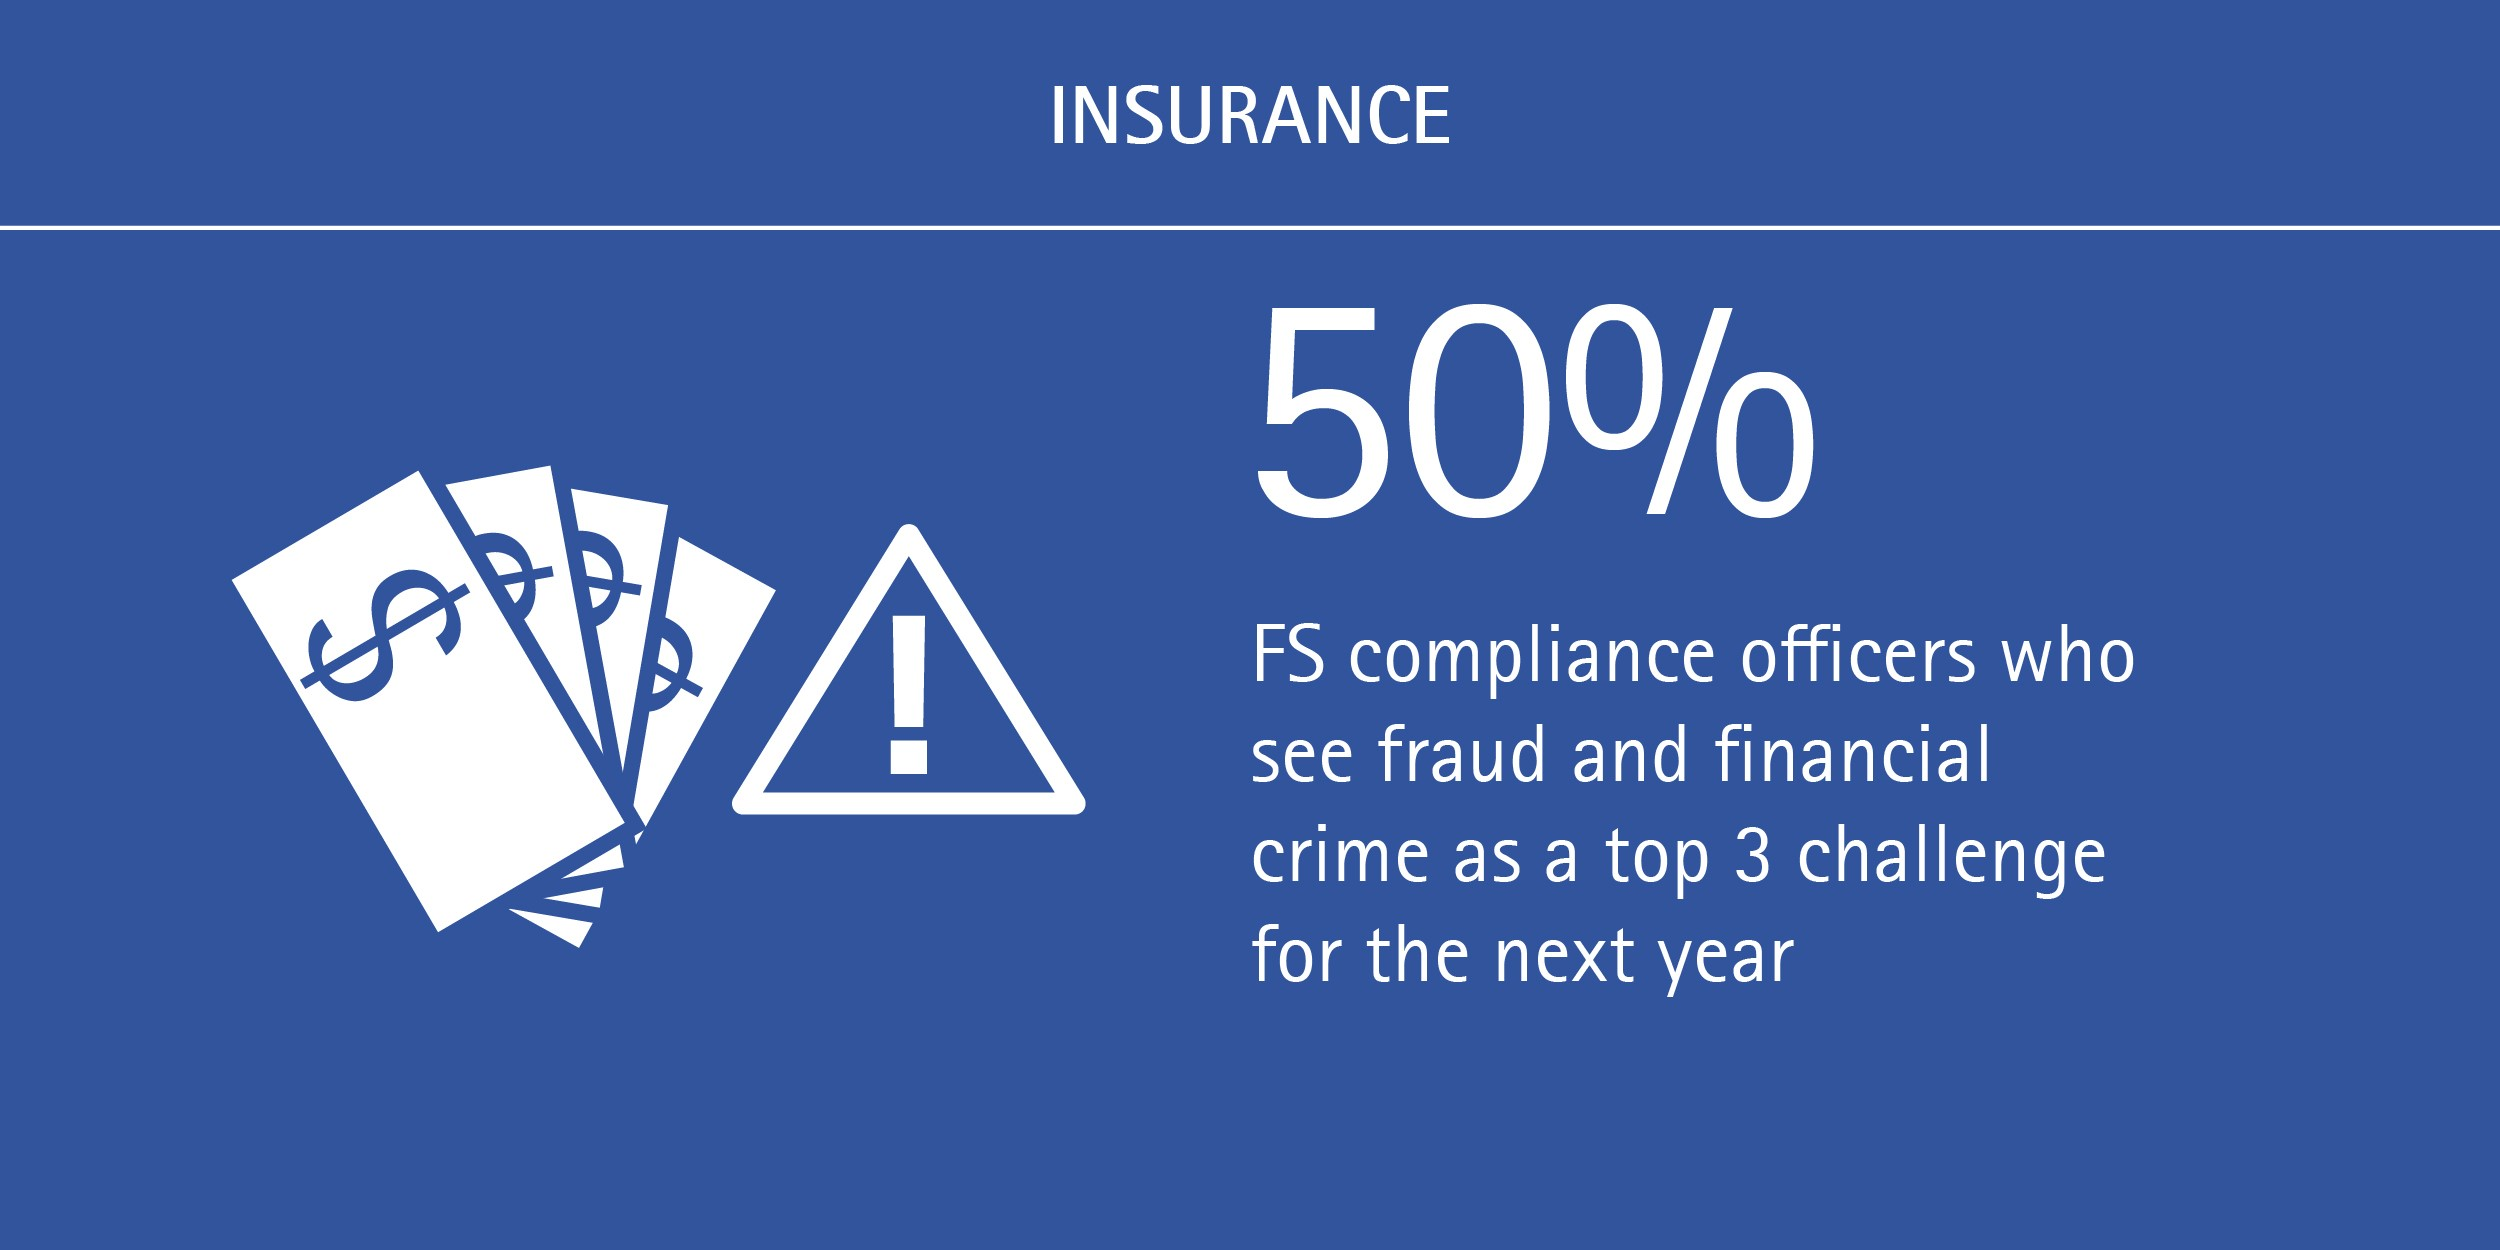 50% of FS compliance officers see fraud and financial crime as a top 3 challenge for the next year